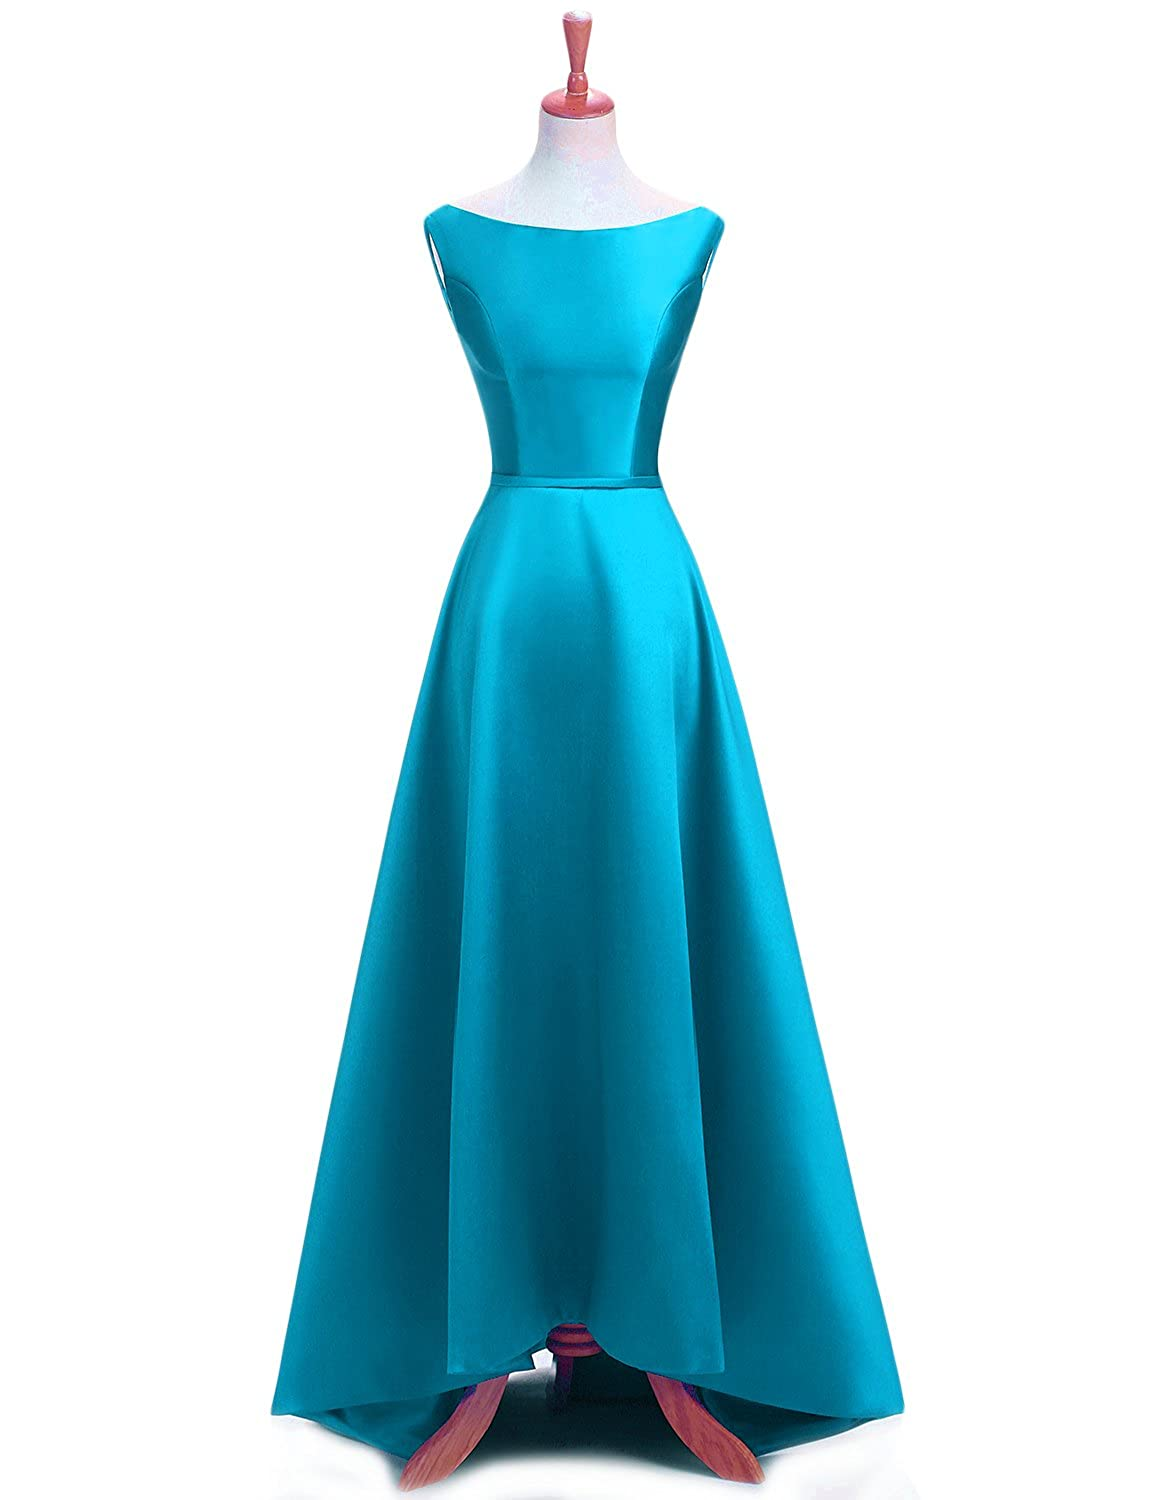 Peacock bluee YSMei Women's Long Aline Prom Dress Sleeveless Satin Ball Gown with Corset Back ON055